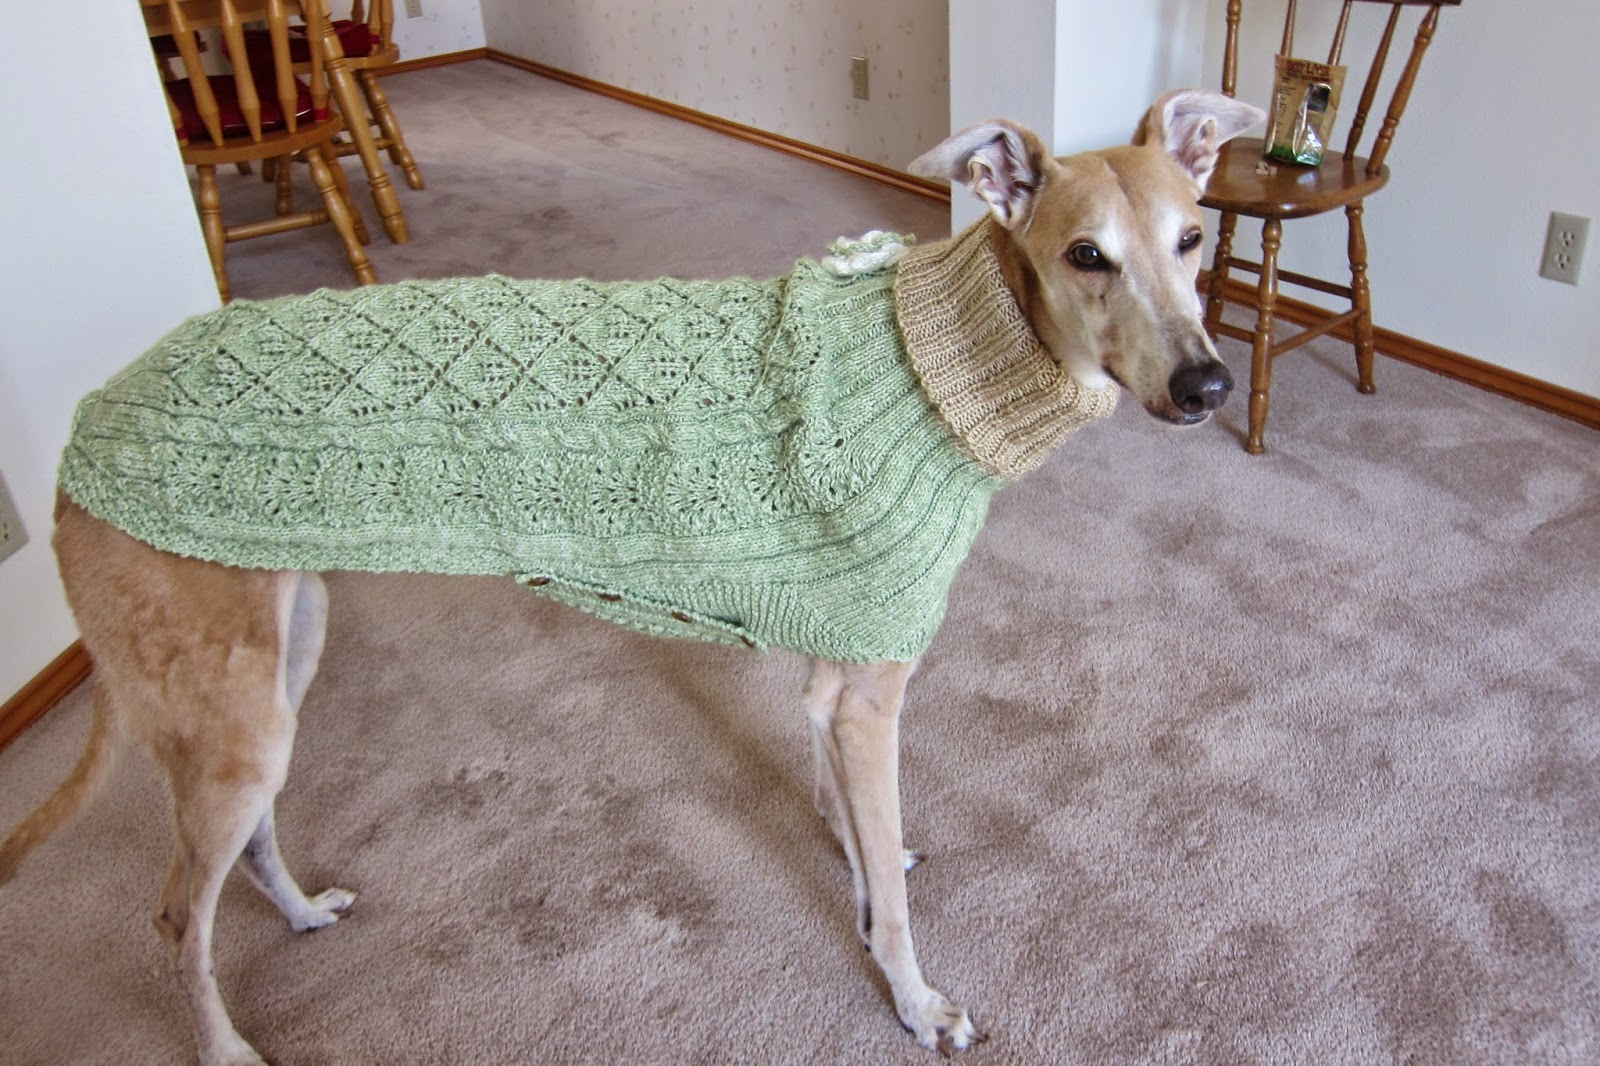 Knitting Patterns For Greyhound Dogs : Greyhound Knit Sweaters: August 2014